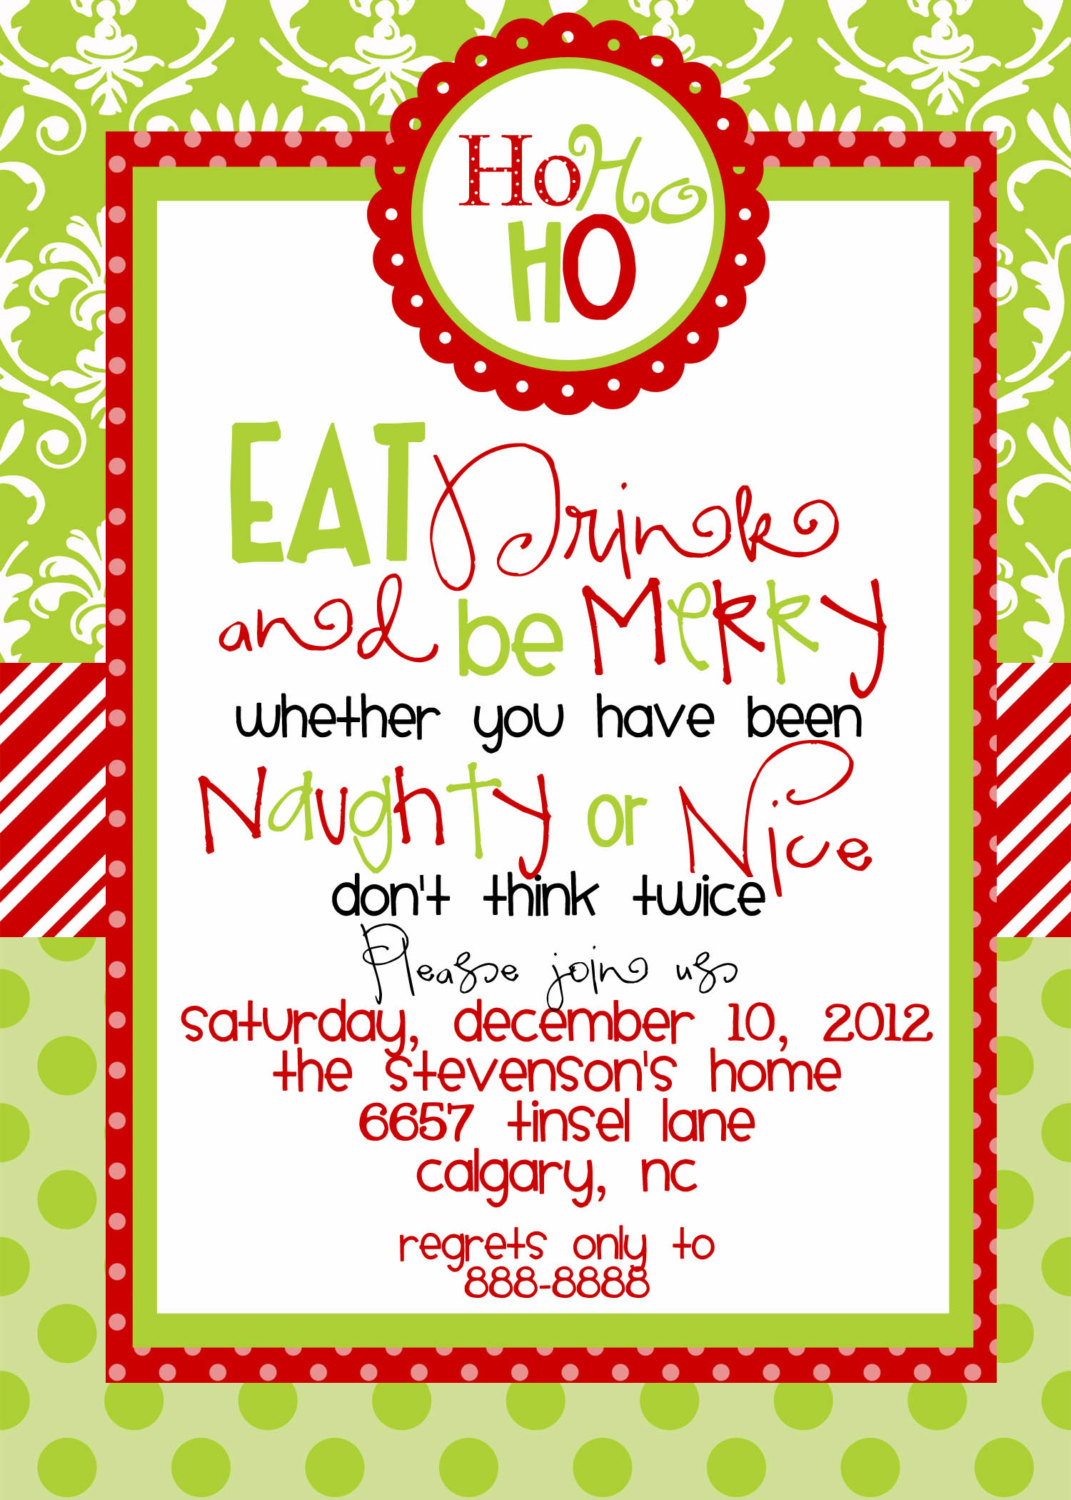 Christmas party sample invitations mickey mouse invitations templates christmas party sample invitations stopboris Gallery